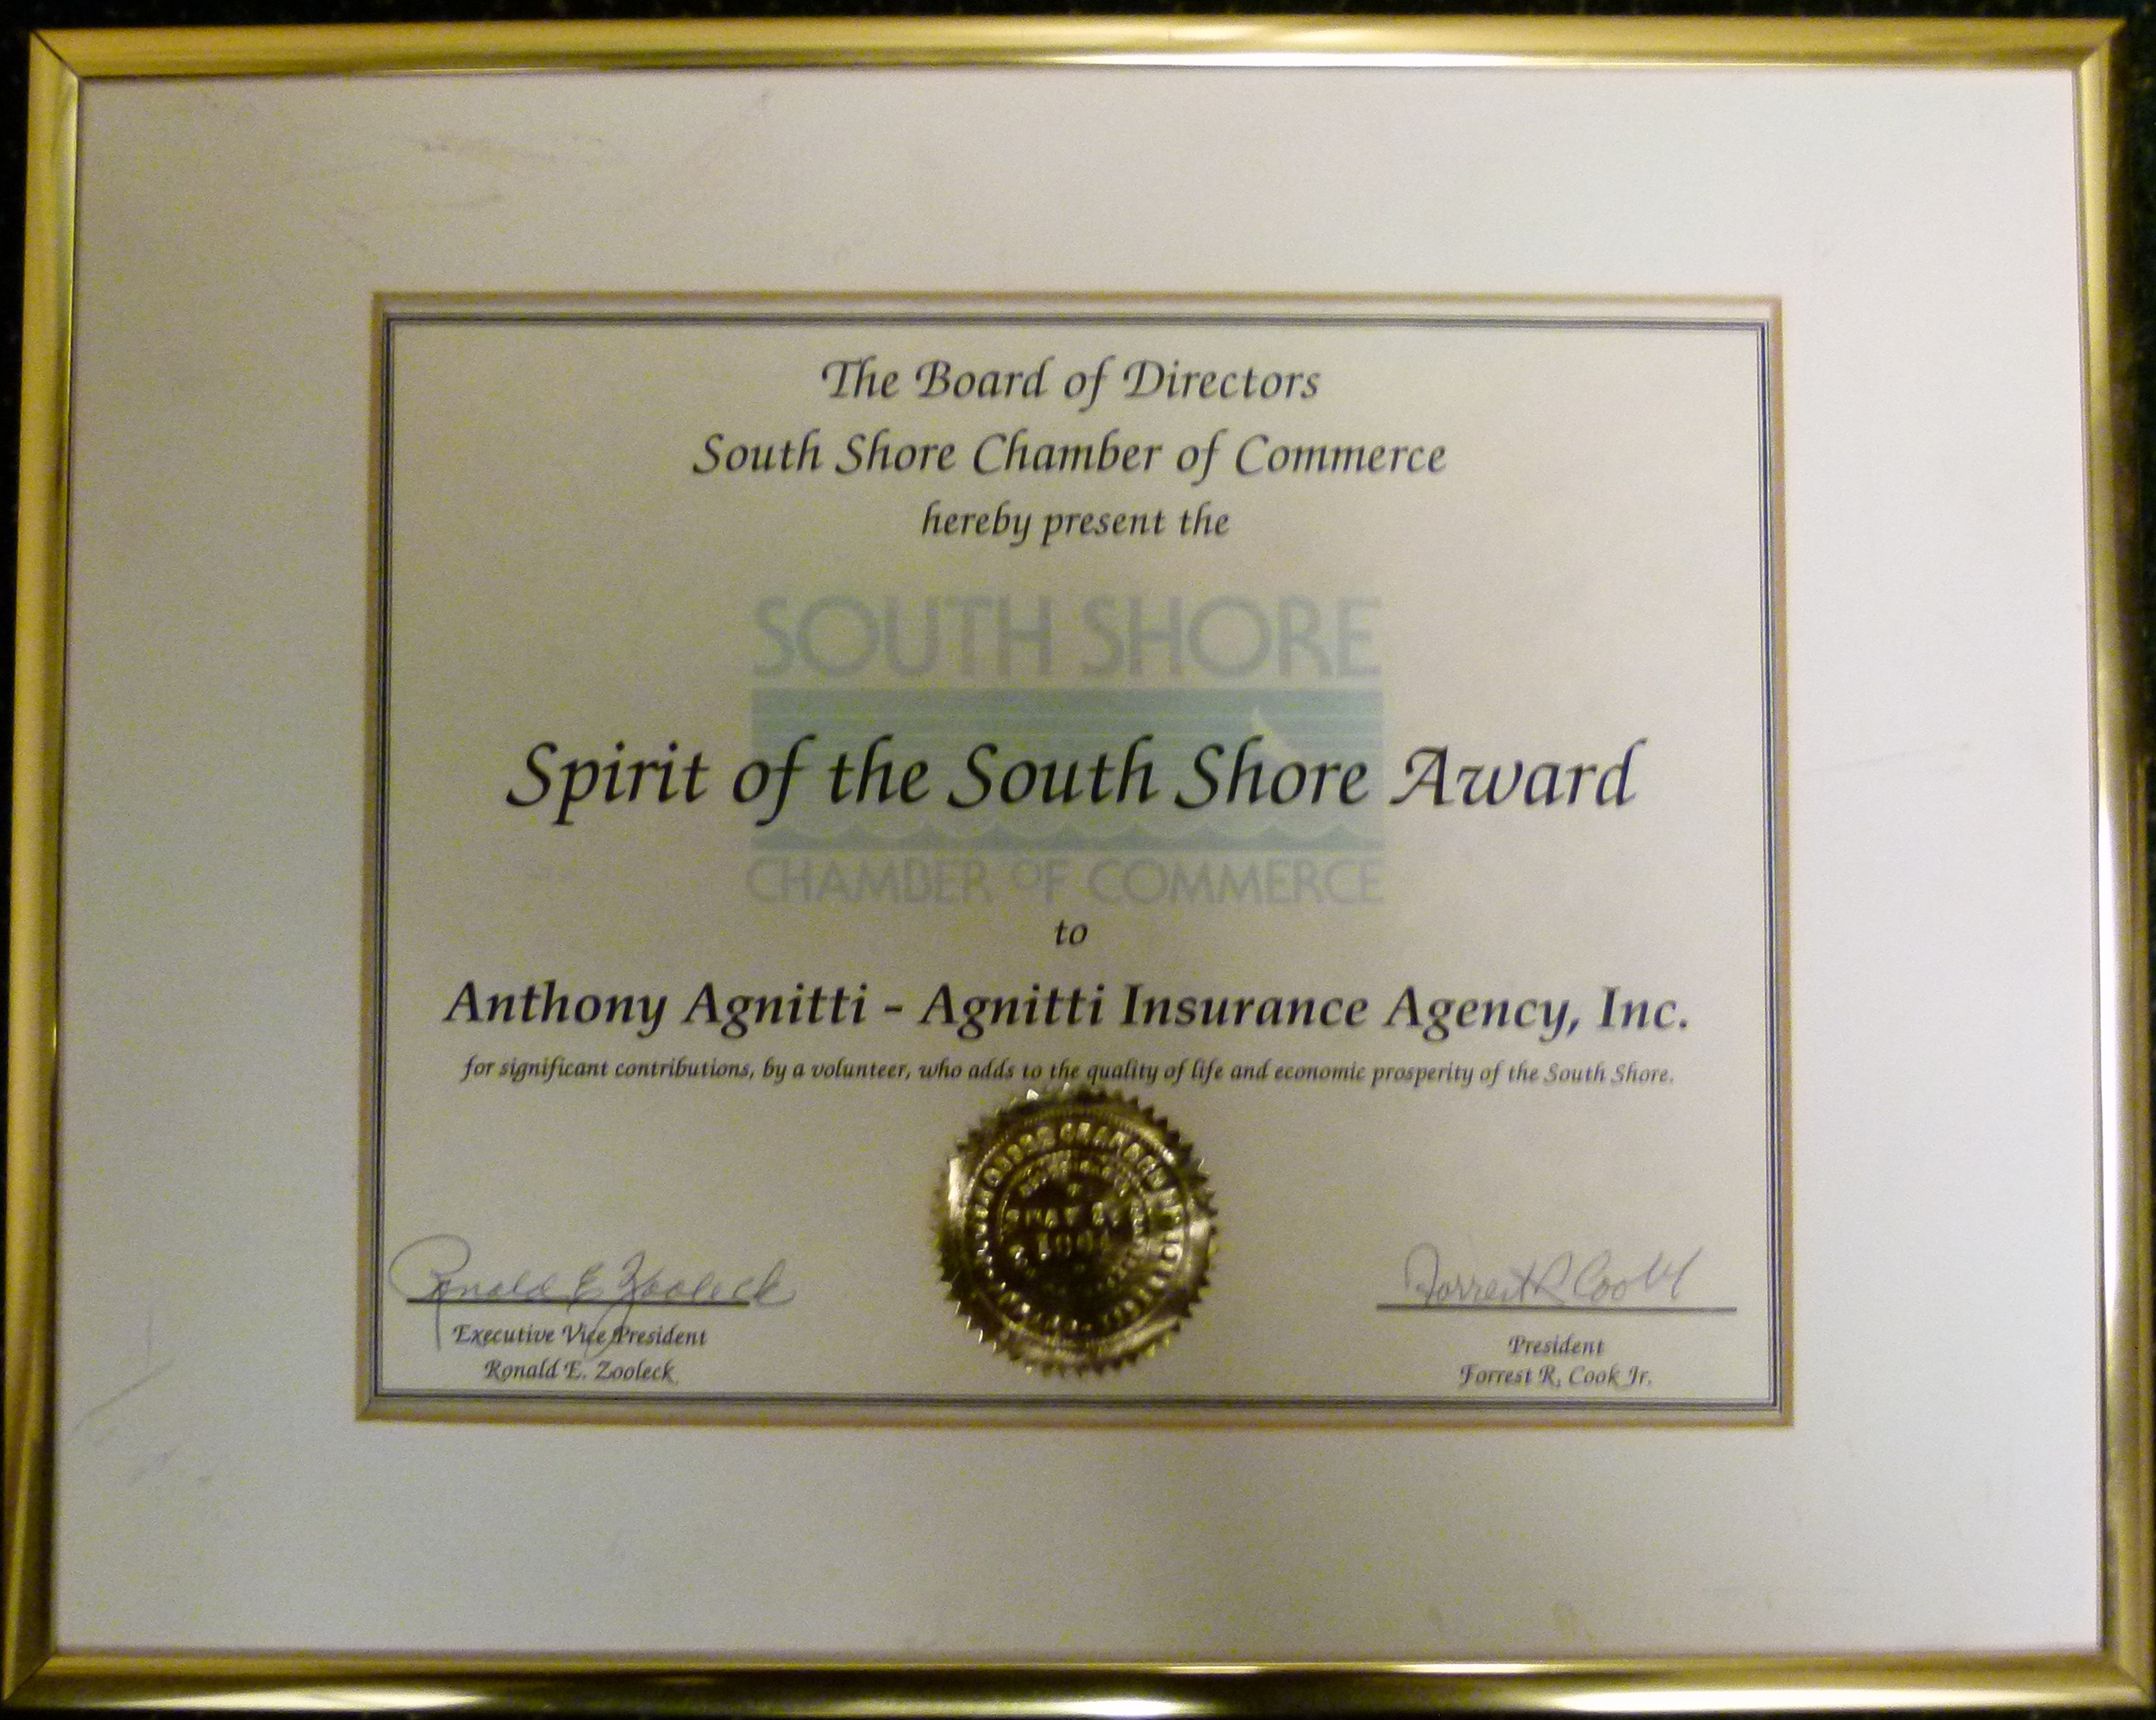 Spirit-of-the-south shore-chamber-of-commerce-Anthony-Agnitti